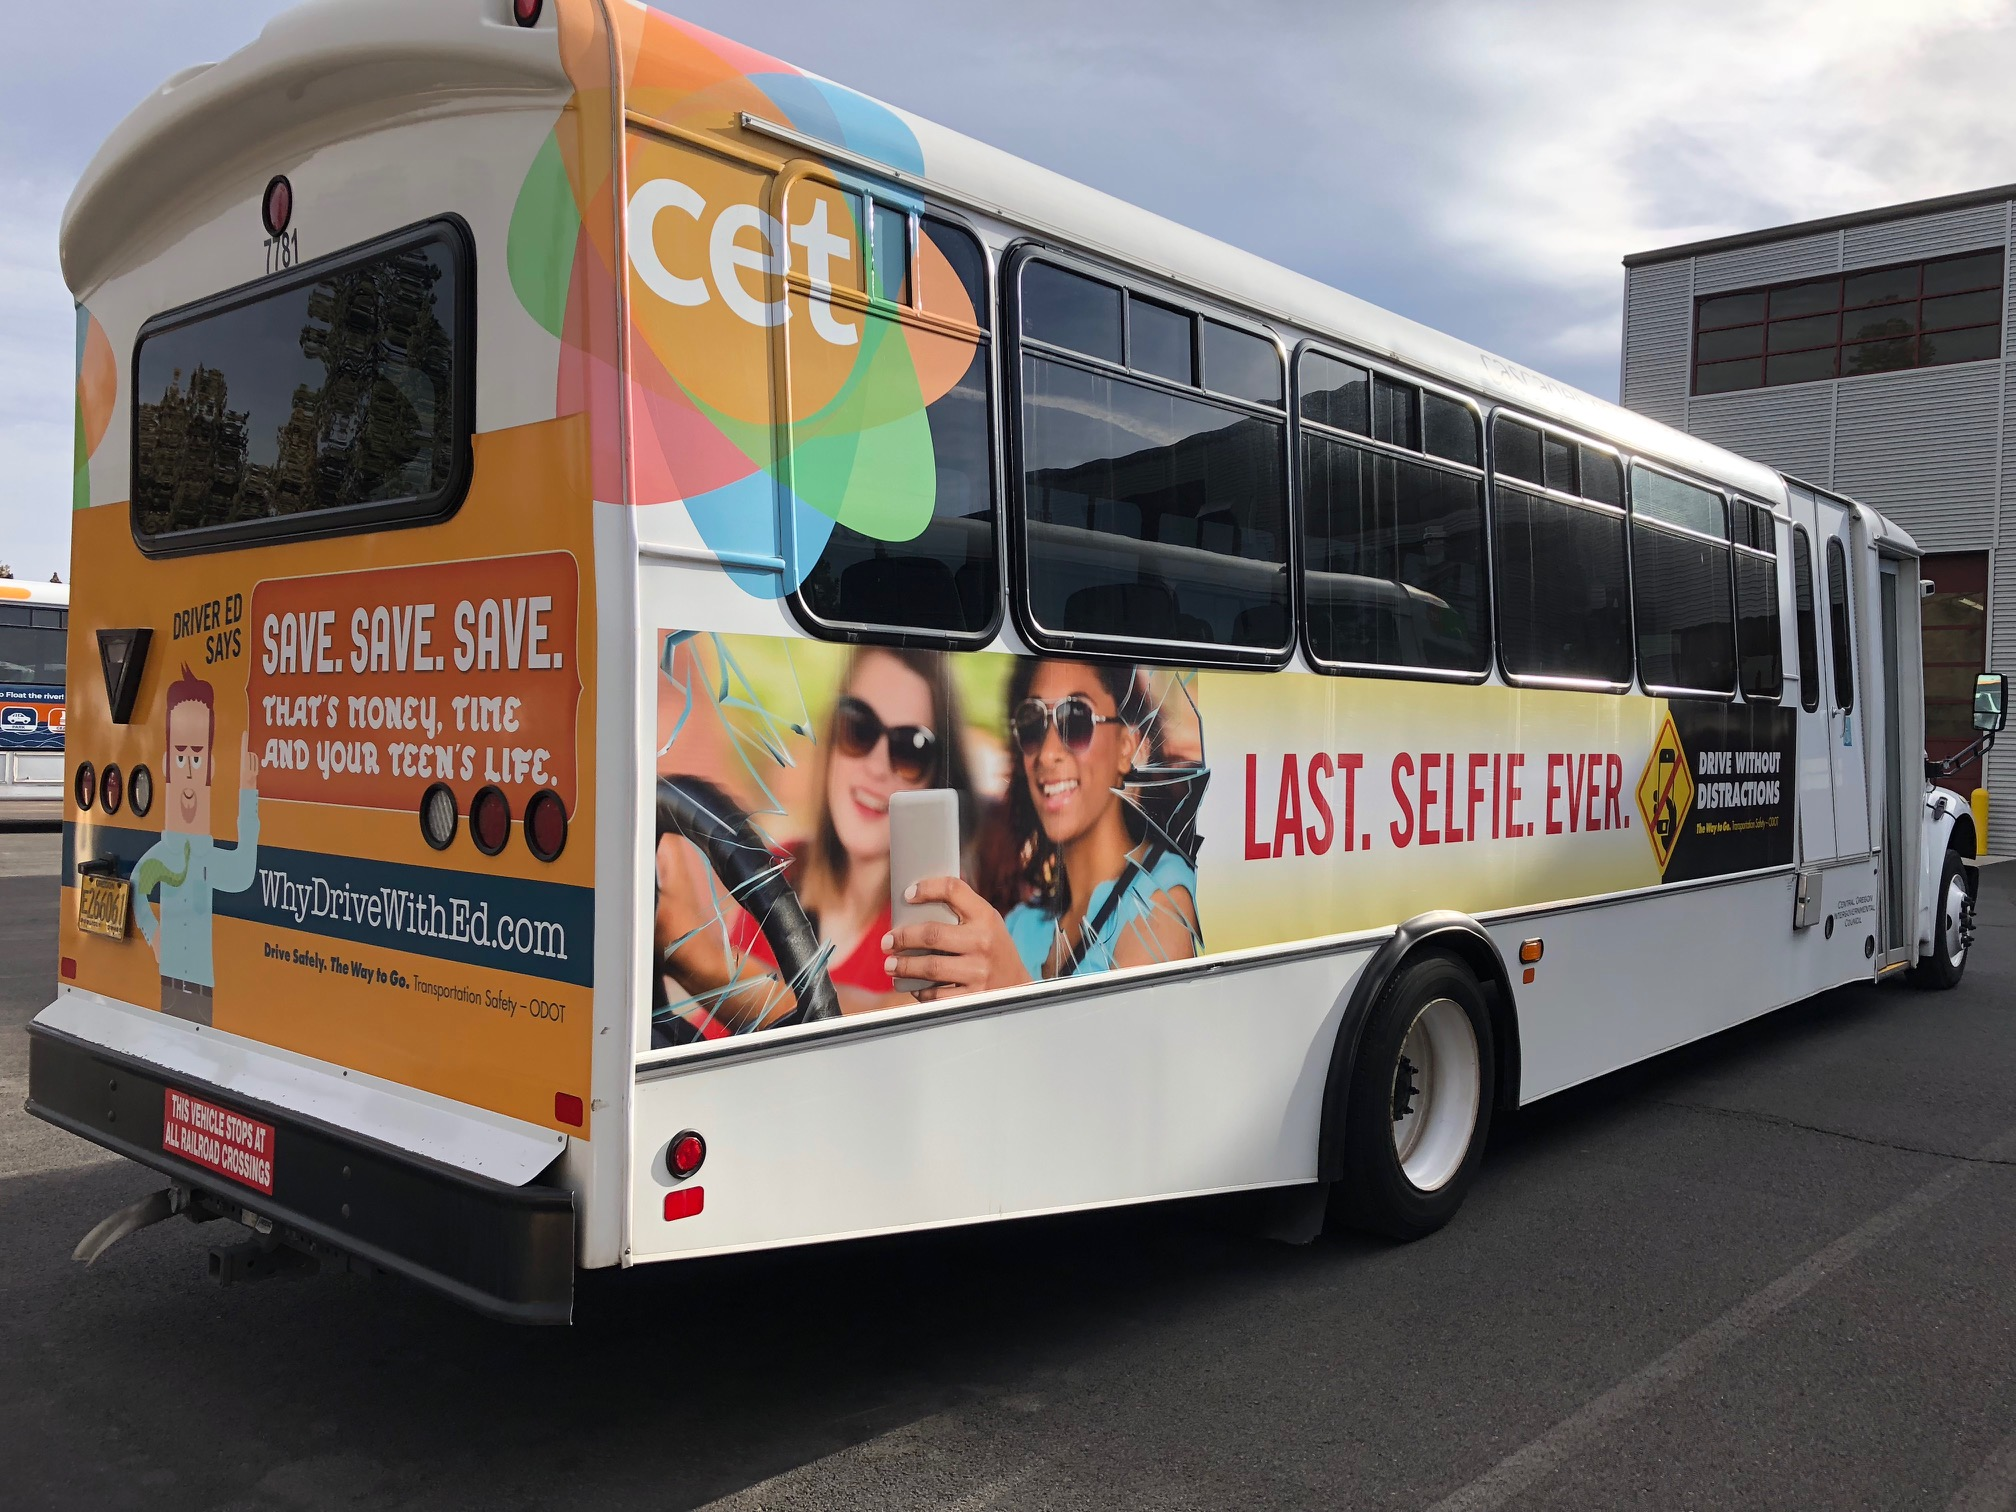 CET bus with graphics